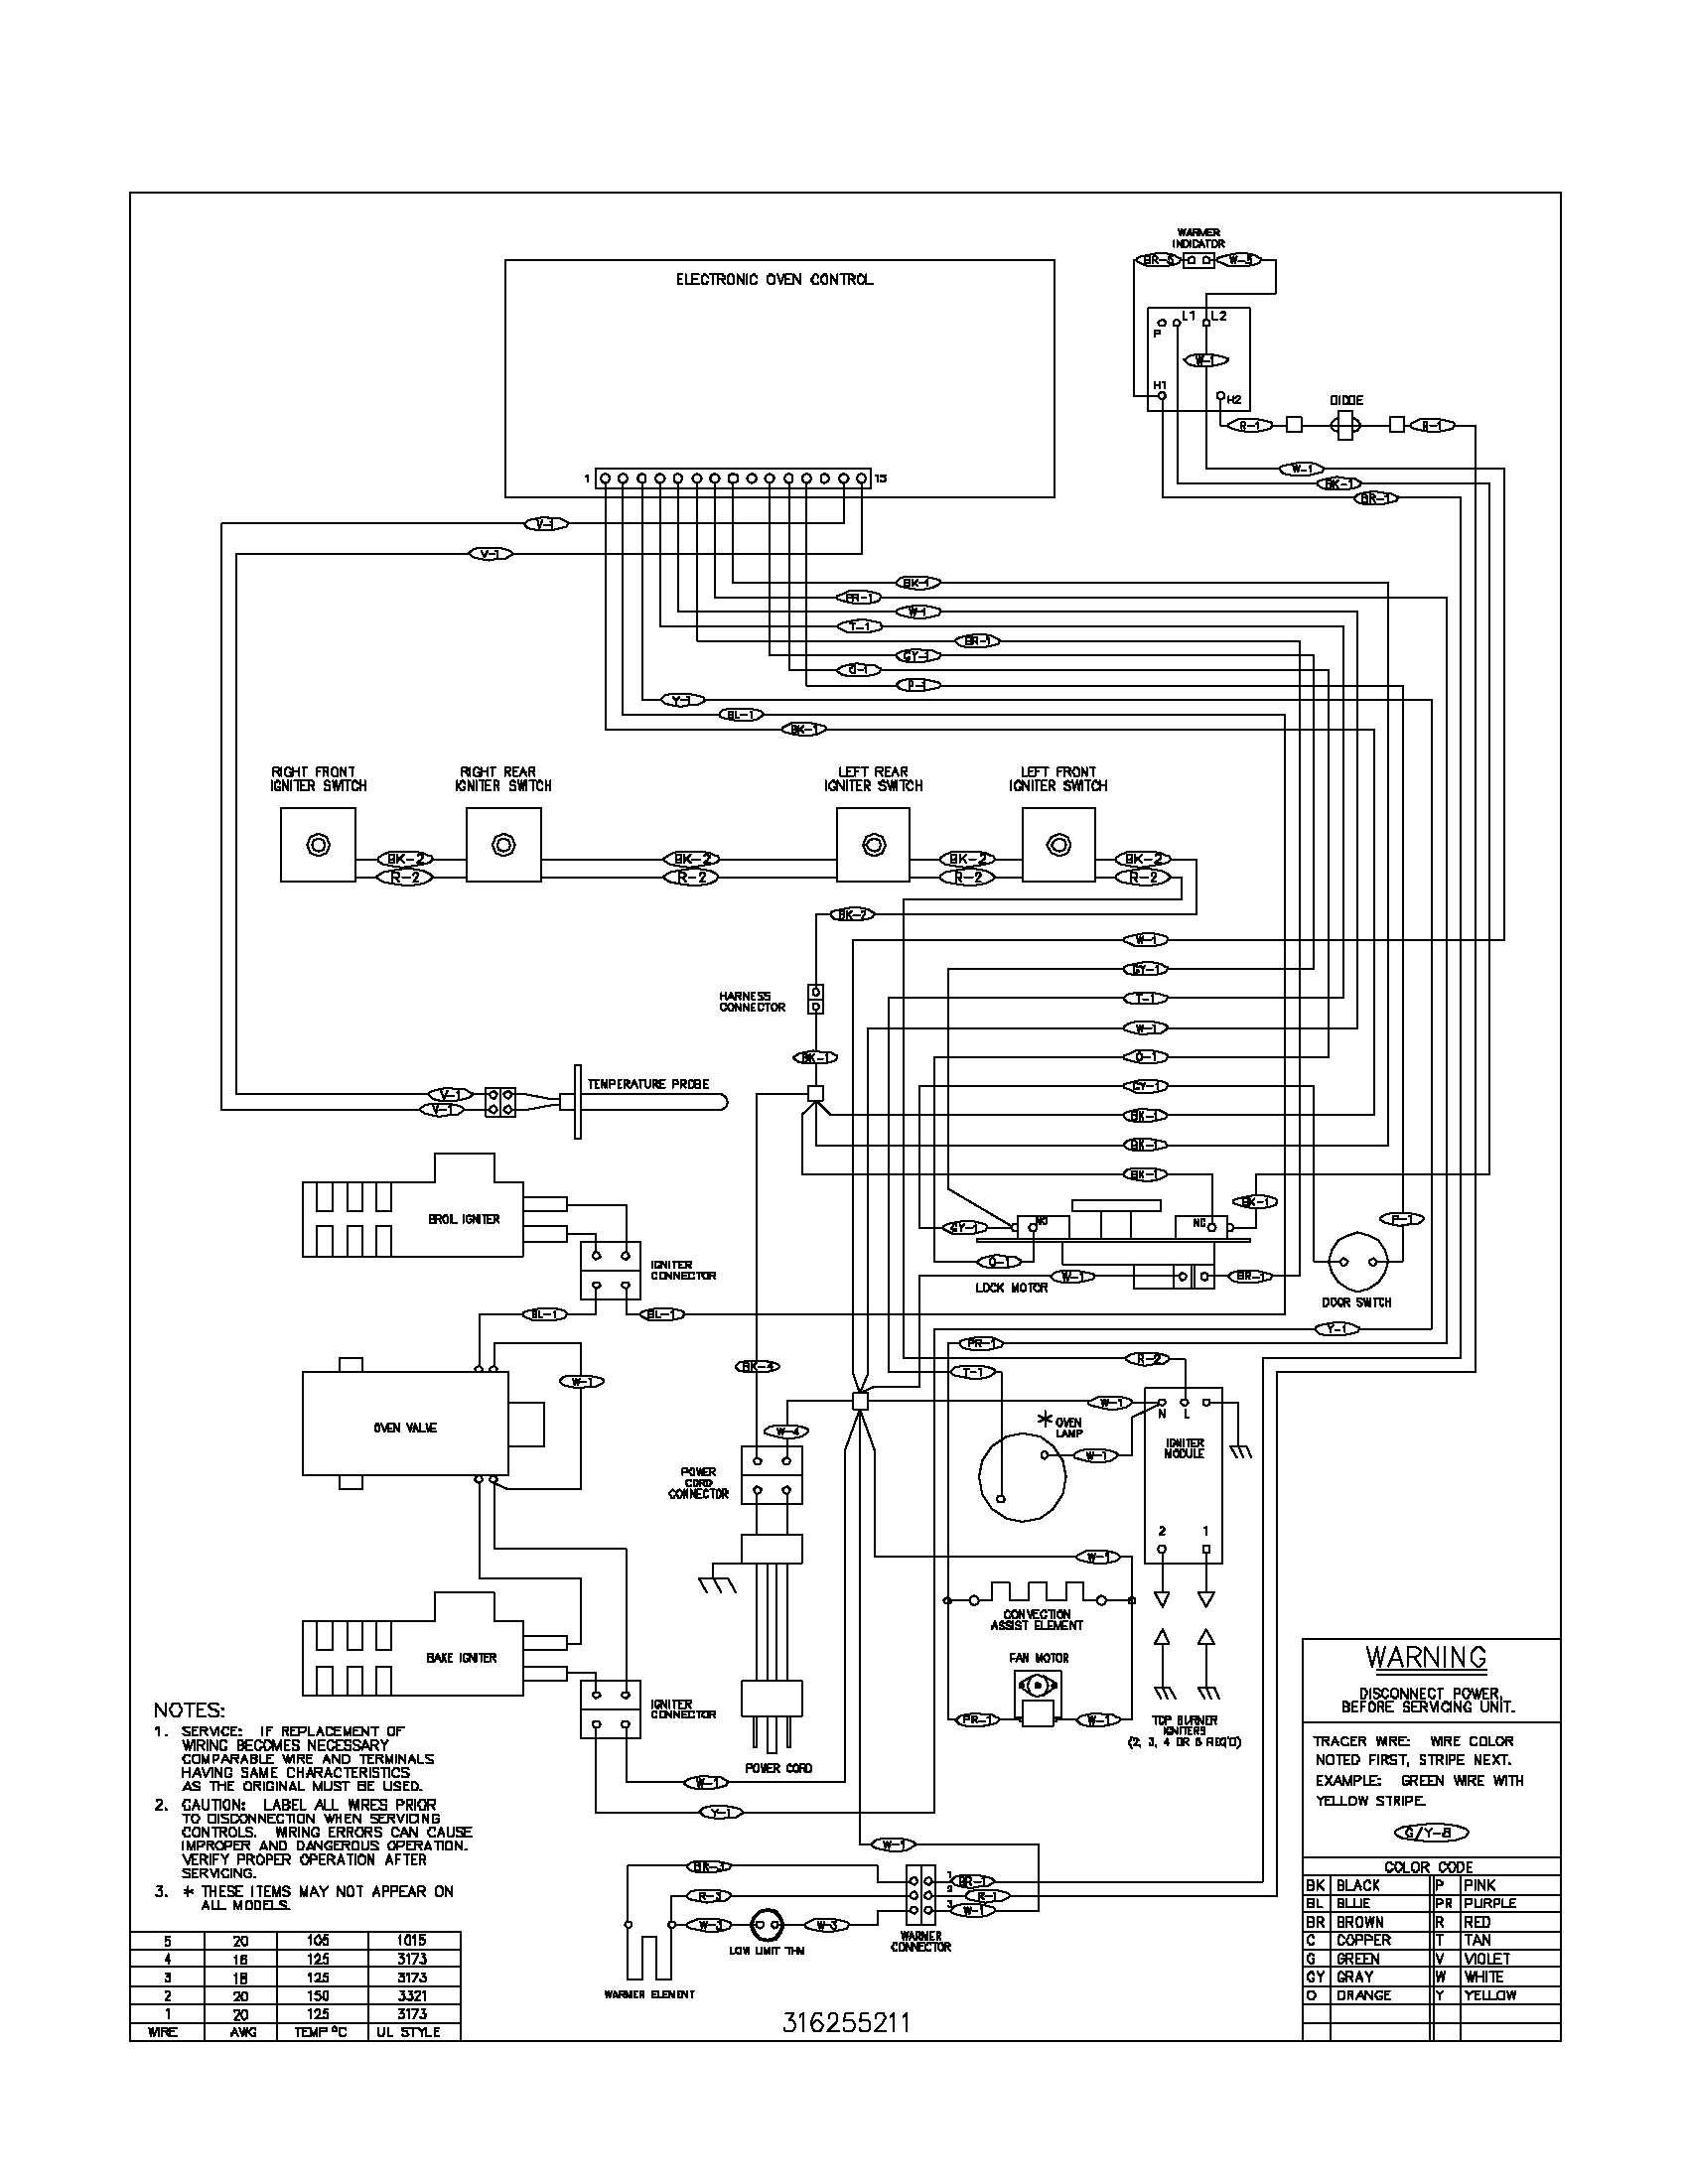 General Electric Bake Element Wiring Diagram Libraries Kenmore Appliance Diagrams Samsung Refrigerator Rb217a Third Levelsamsung Front Load Dryer On